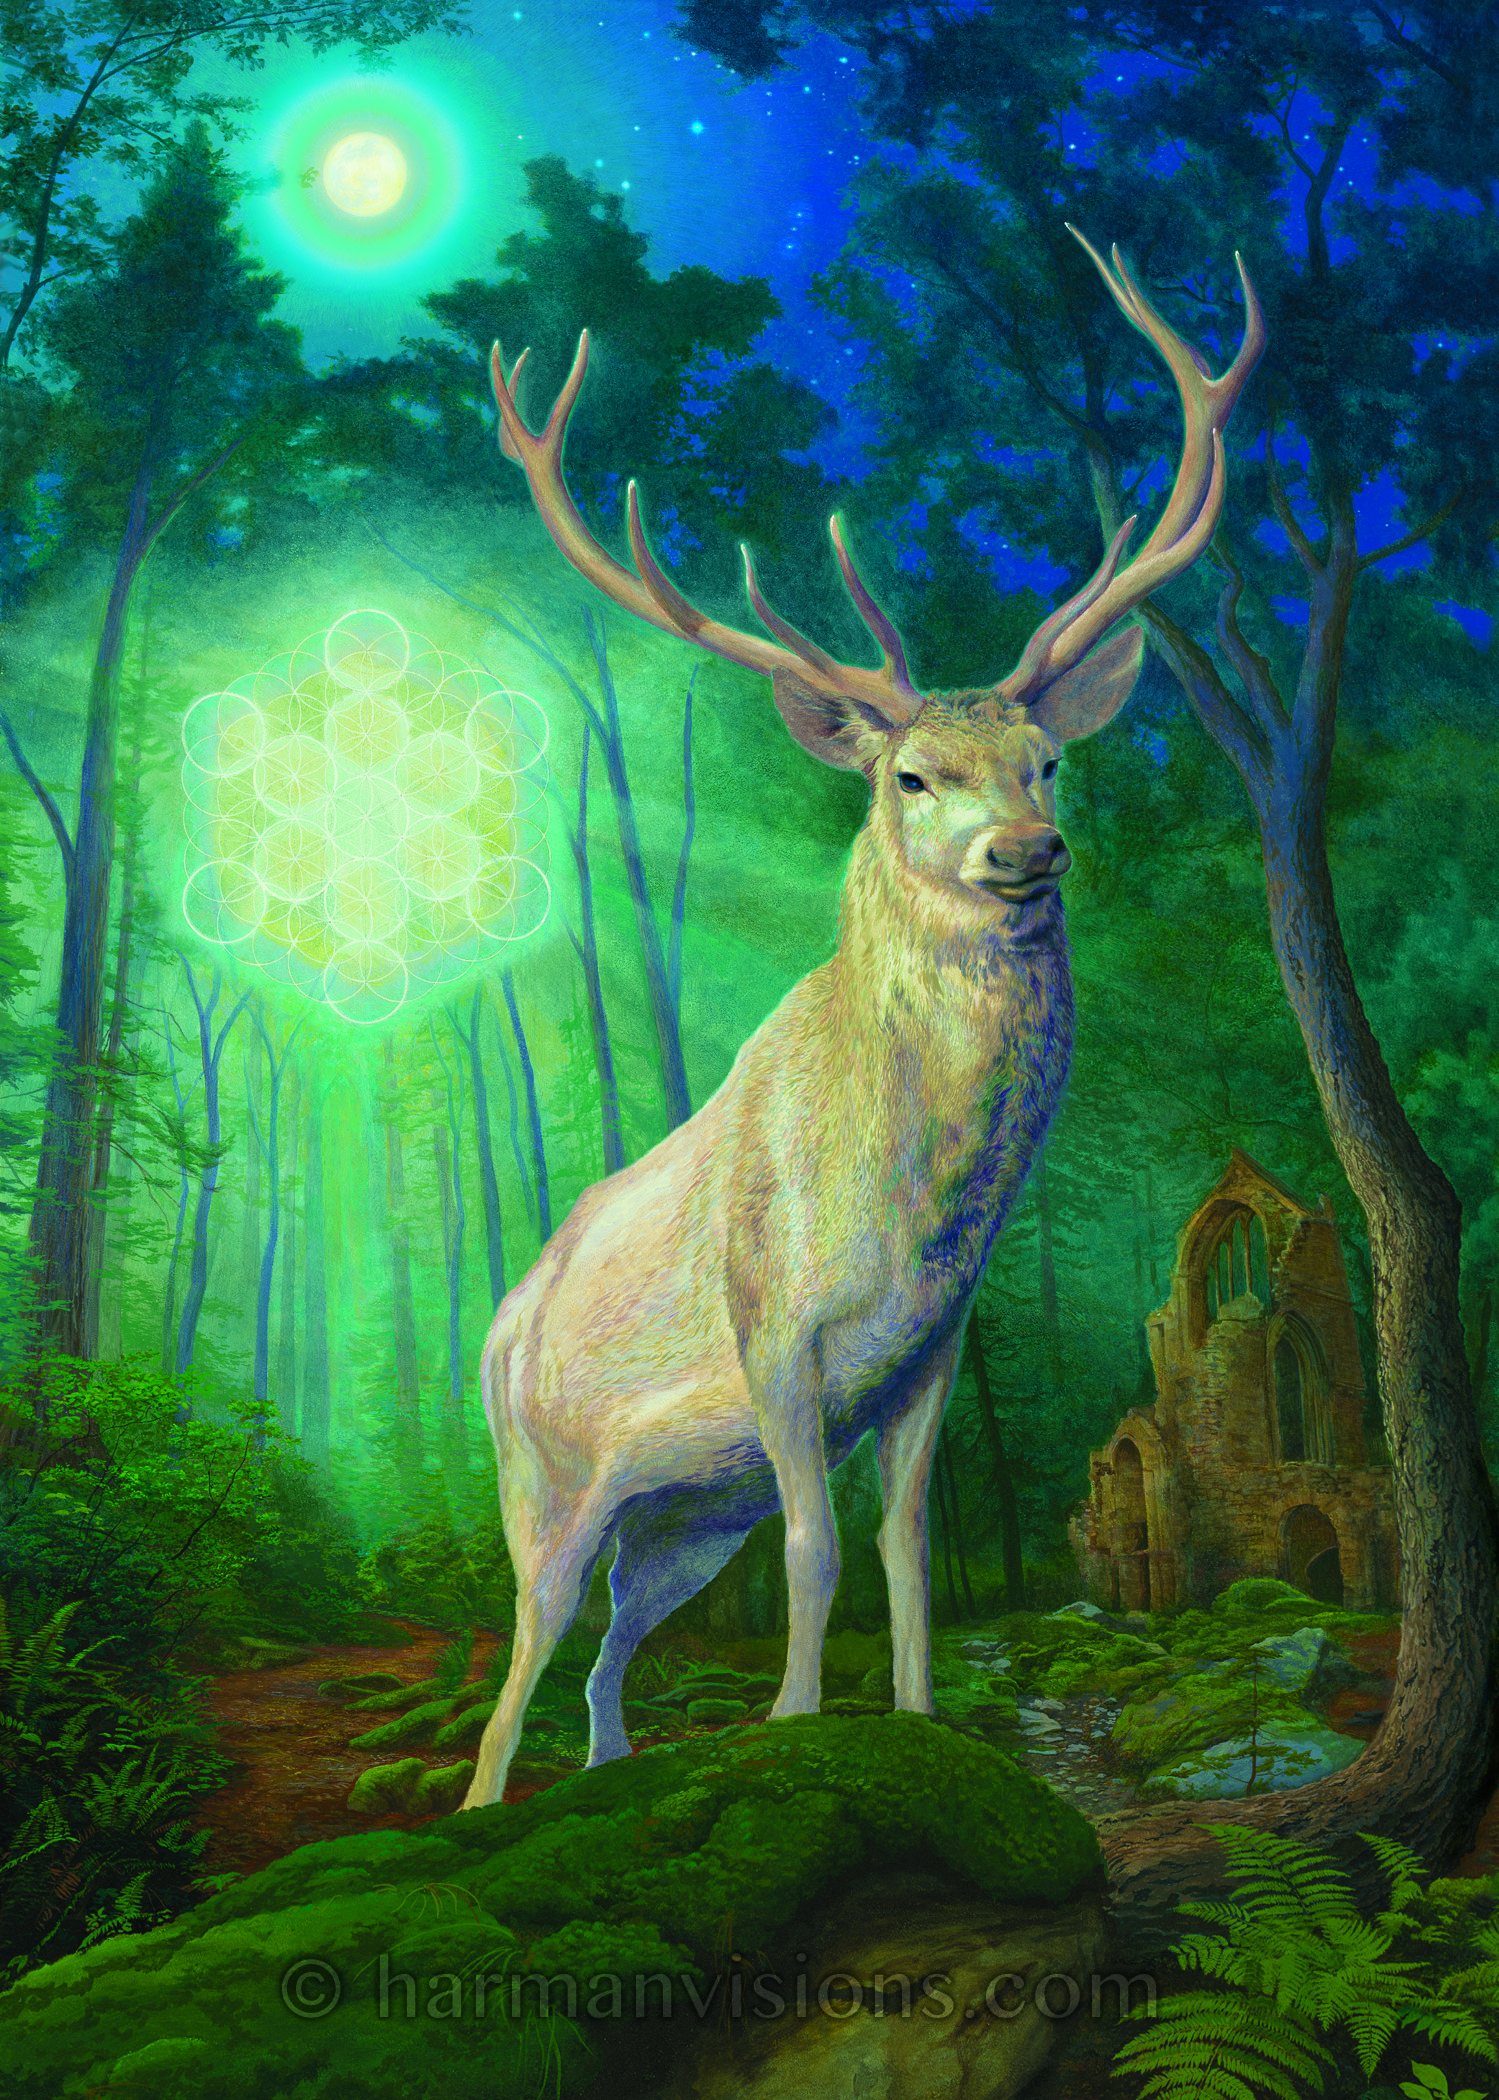 - White Stag is a commission from a client I never met in person. He lives in Mexico and has a wonderful sound healing retreat center near Mexico City. He emailed me and we spoke on the phone about his vision. Deeply significant to him, he spoke of the stag as representing the return of the Christ spirit in the hearts of all people. He specifically did not want any Church symbolism, so we chose the Flower of Life to be the glowing vision in the distance. The ruins symbolize the passing of the old ways, in the midst of nature's gifts.